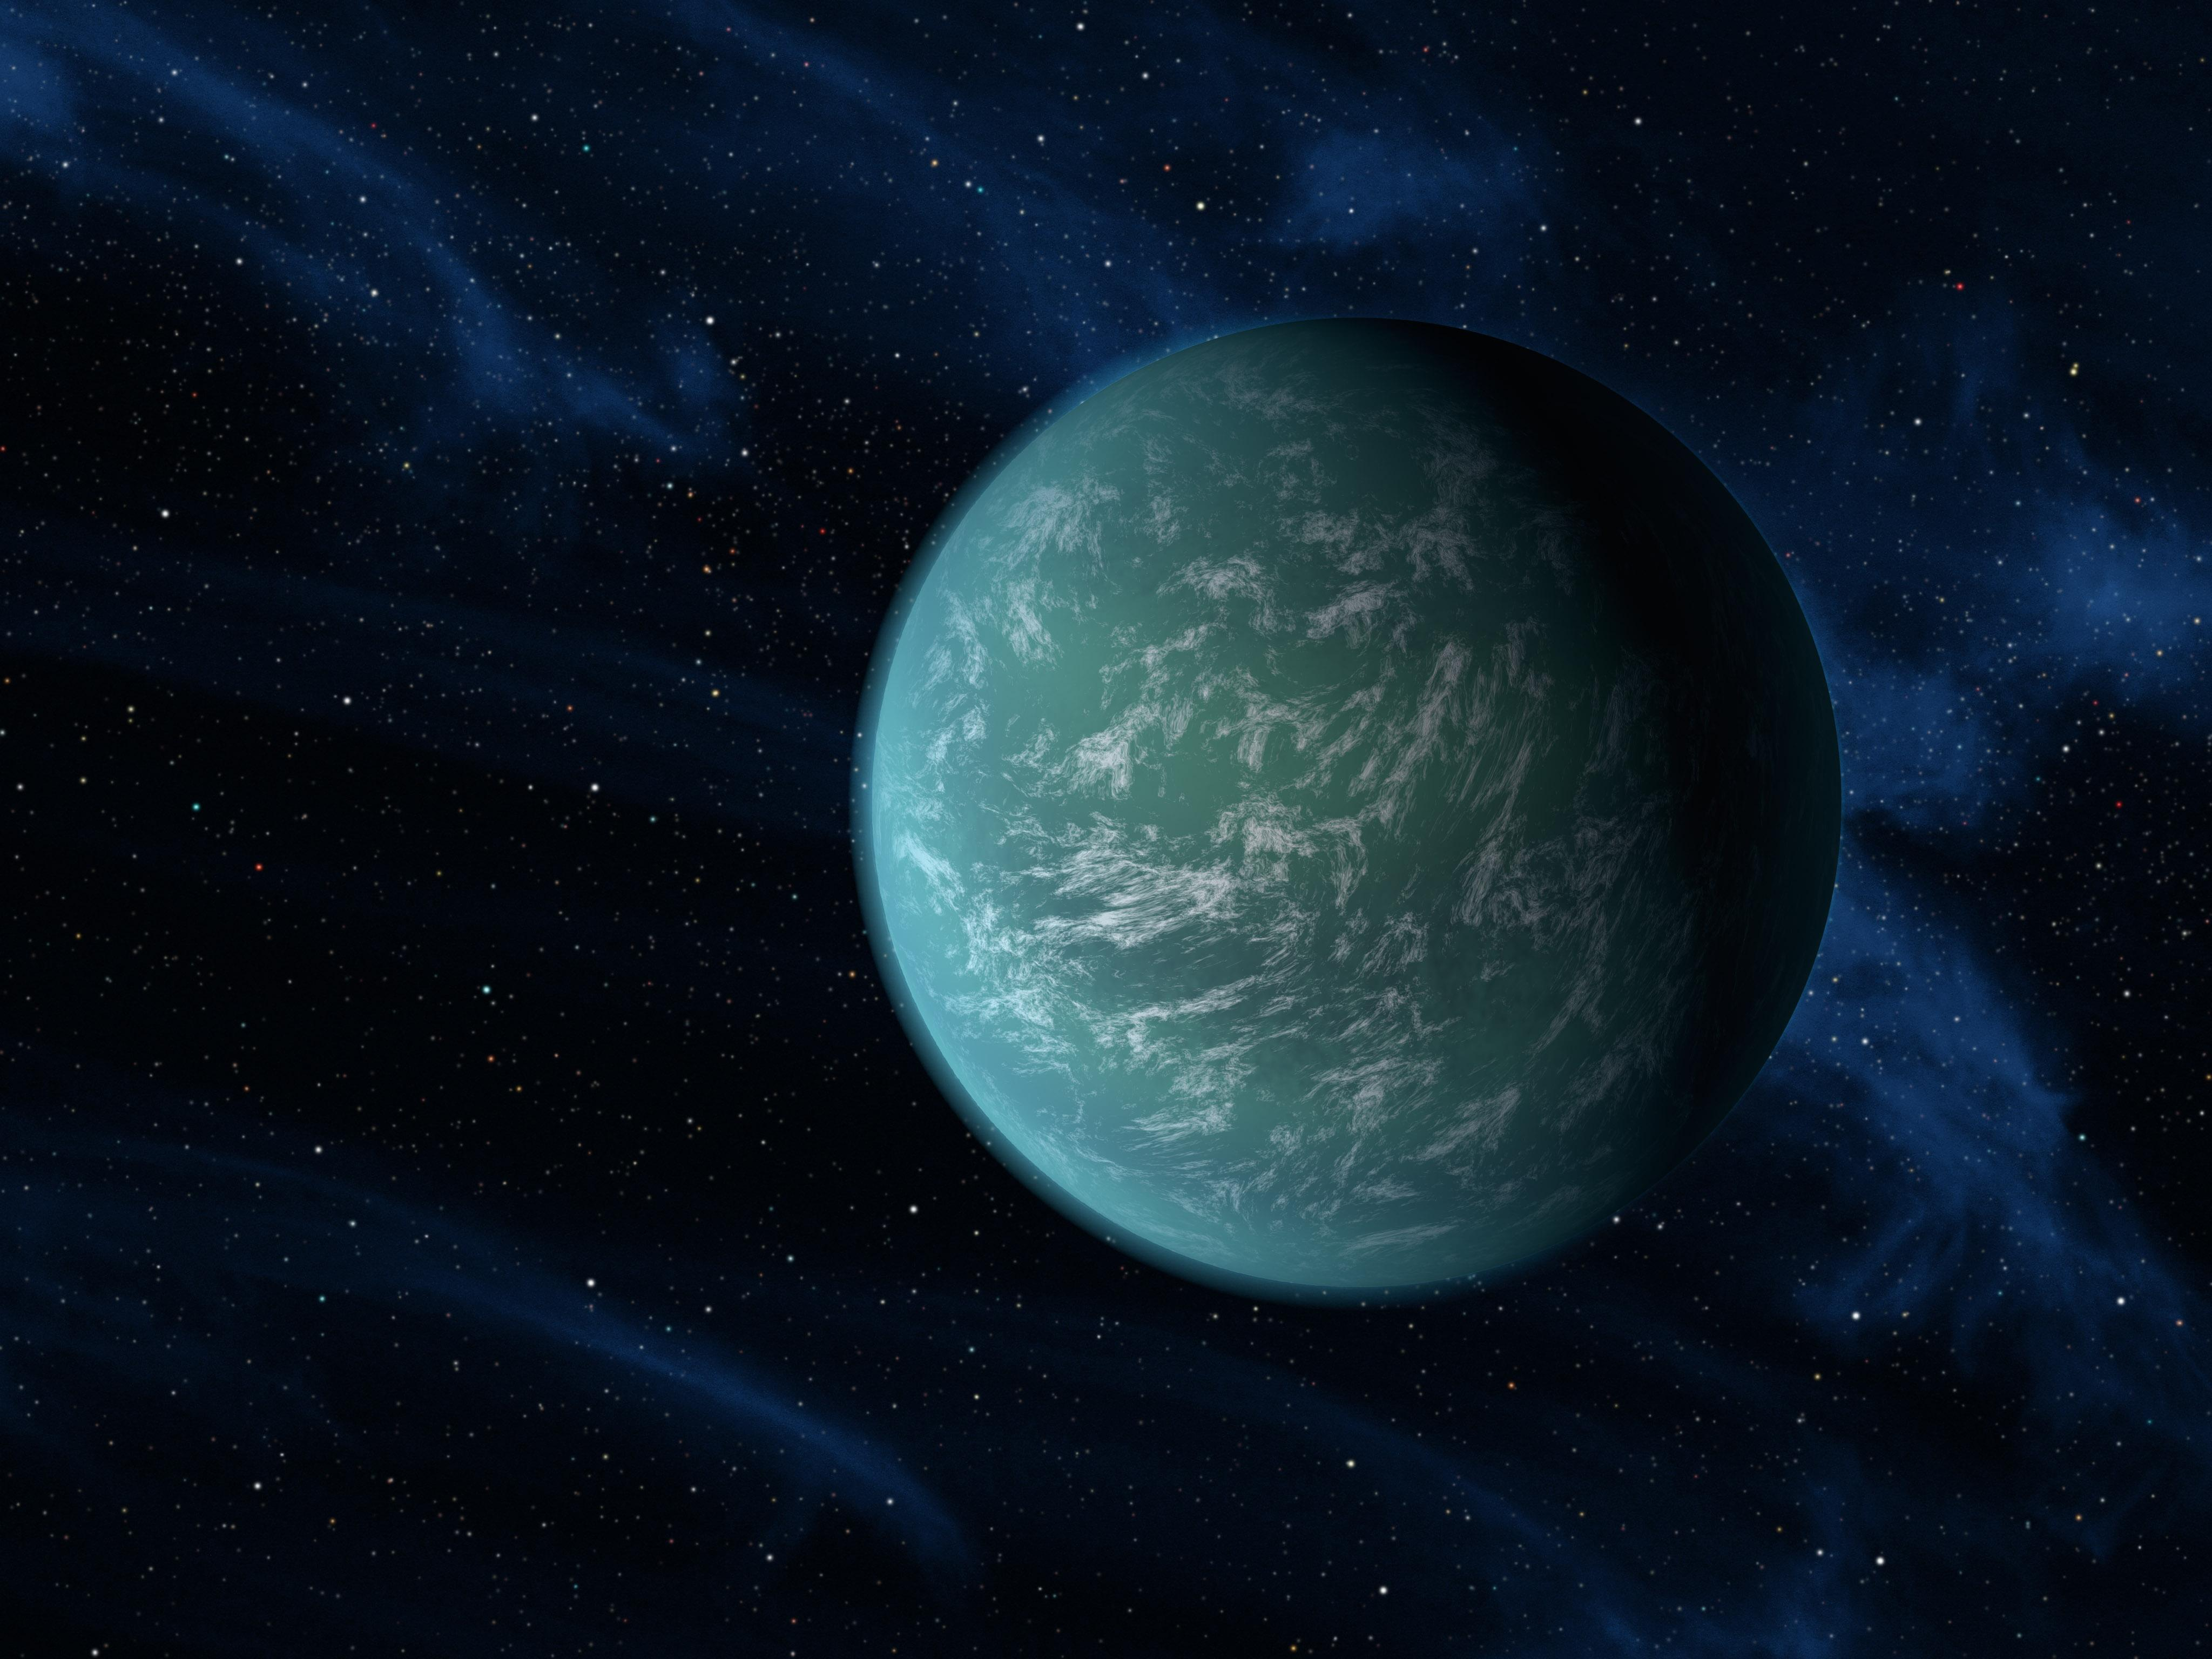 File:Kepler22b-artwork.jpg - Wikimedia Commons